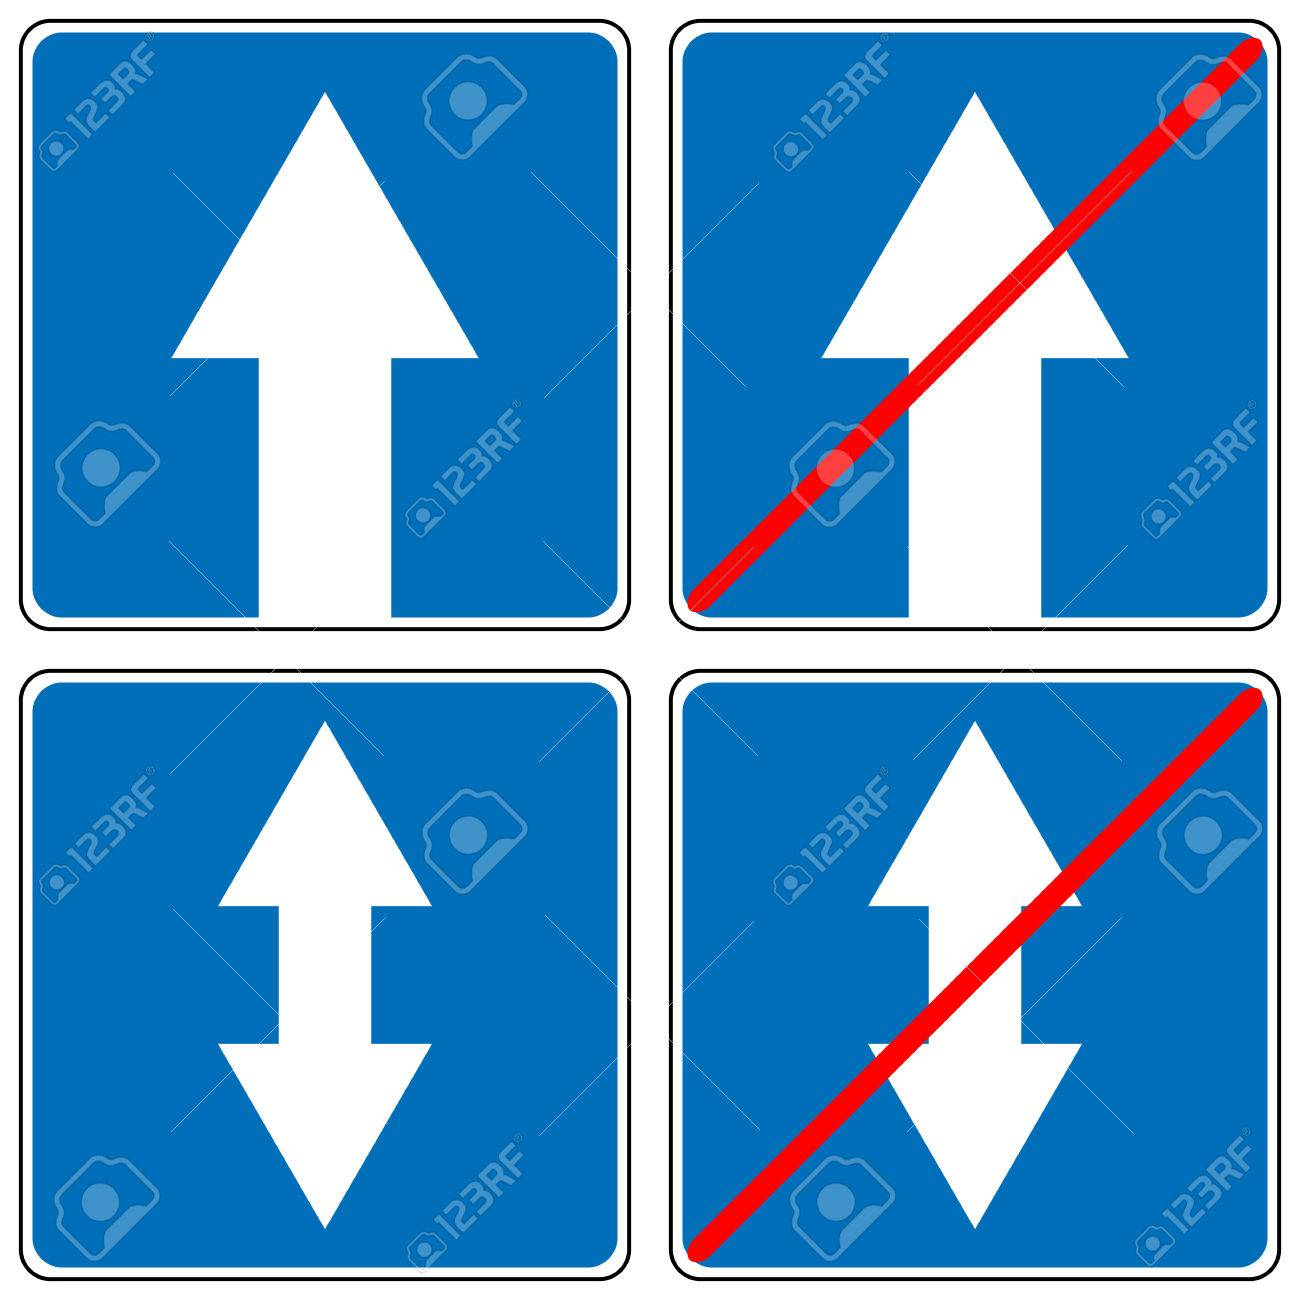 Ahead Only One Way Traffic Sign Drive Straight Arrow Traffic